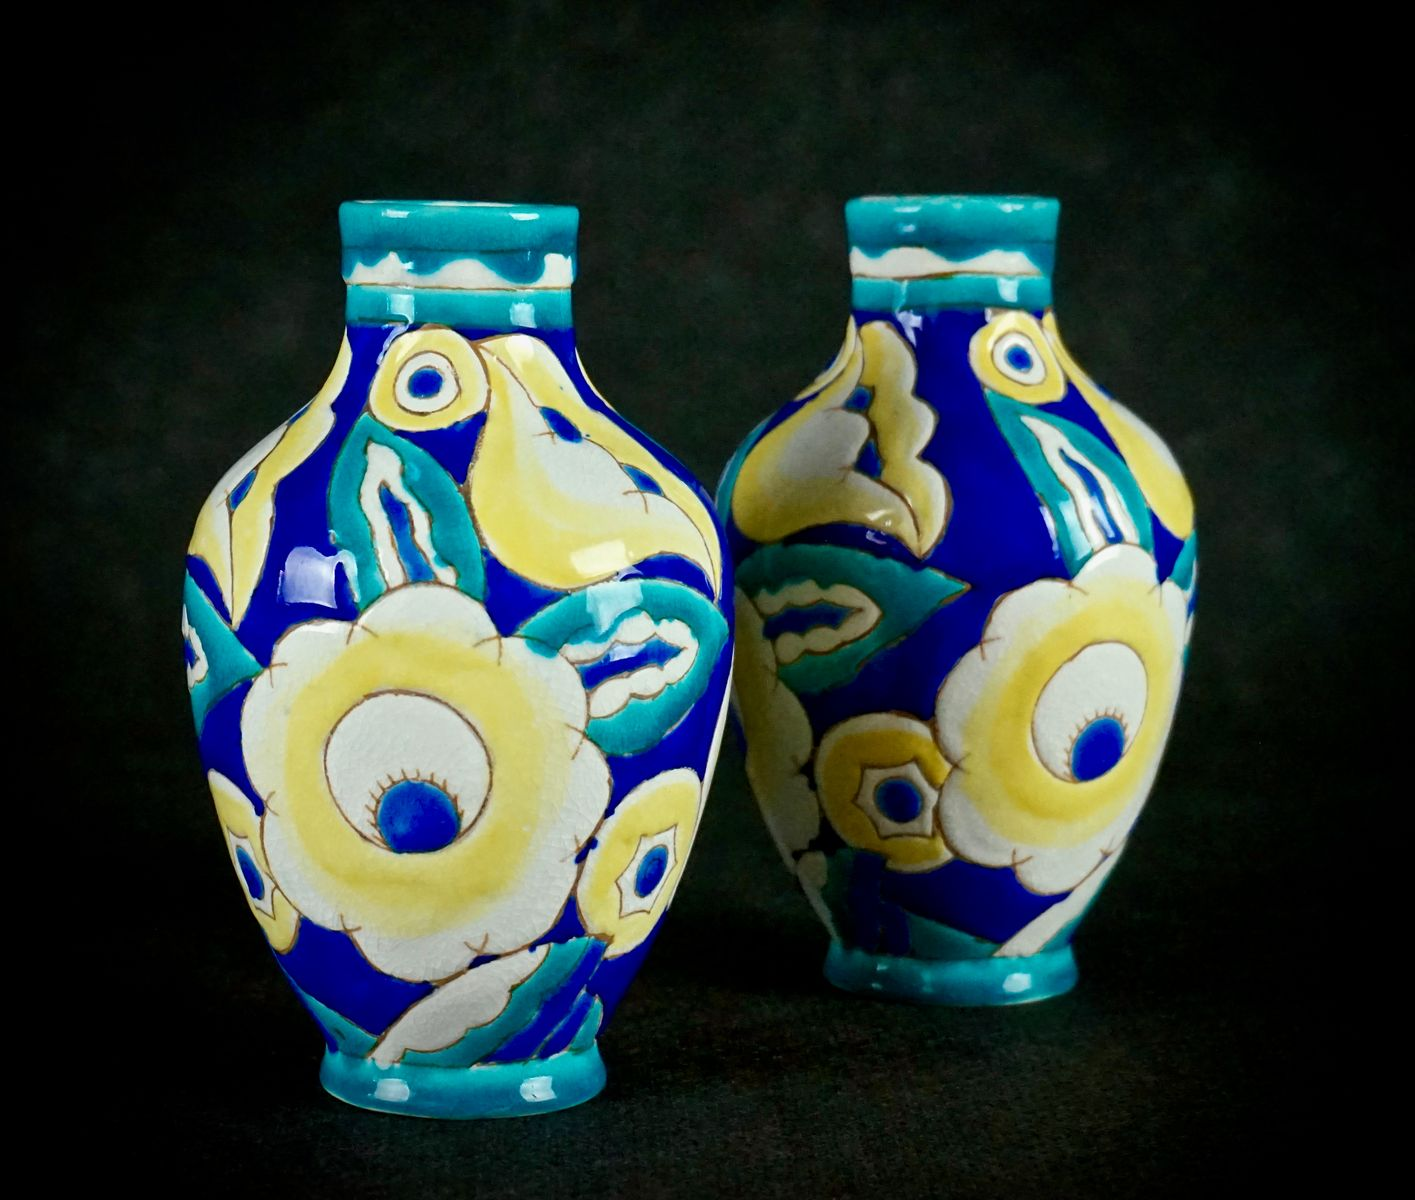 Art deco vases by charles catteau for boch freres keramis 1932 art deco vases by charles catteau for boch freres keramis 1932 set of 2 floridaeventfo Image collections